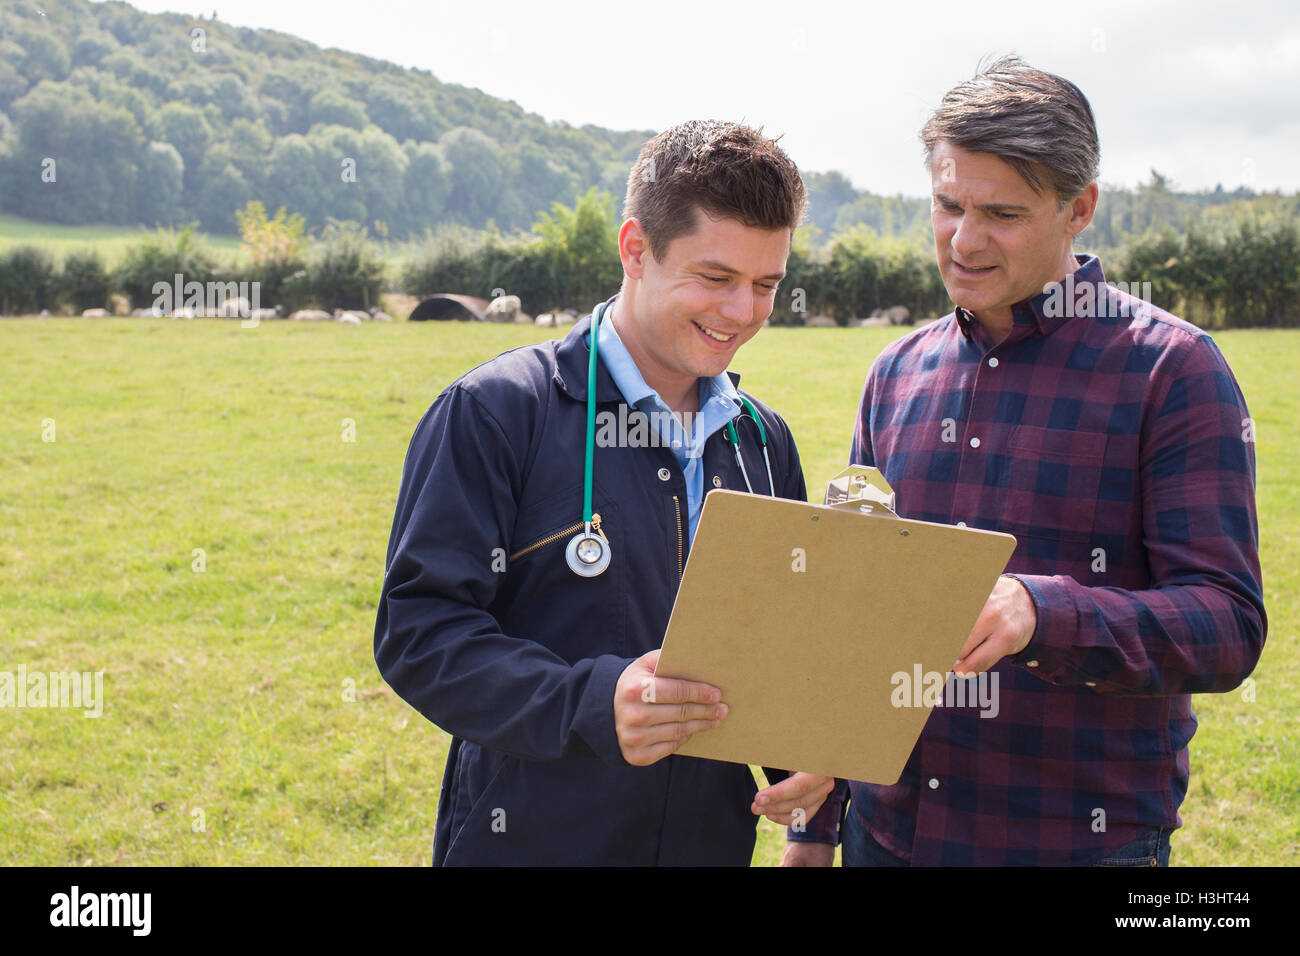 Farmer And Vet Having Discussion In Field Of Sheep - Stock Image